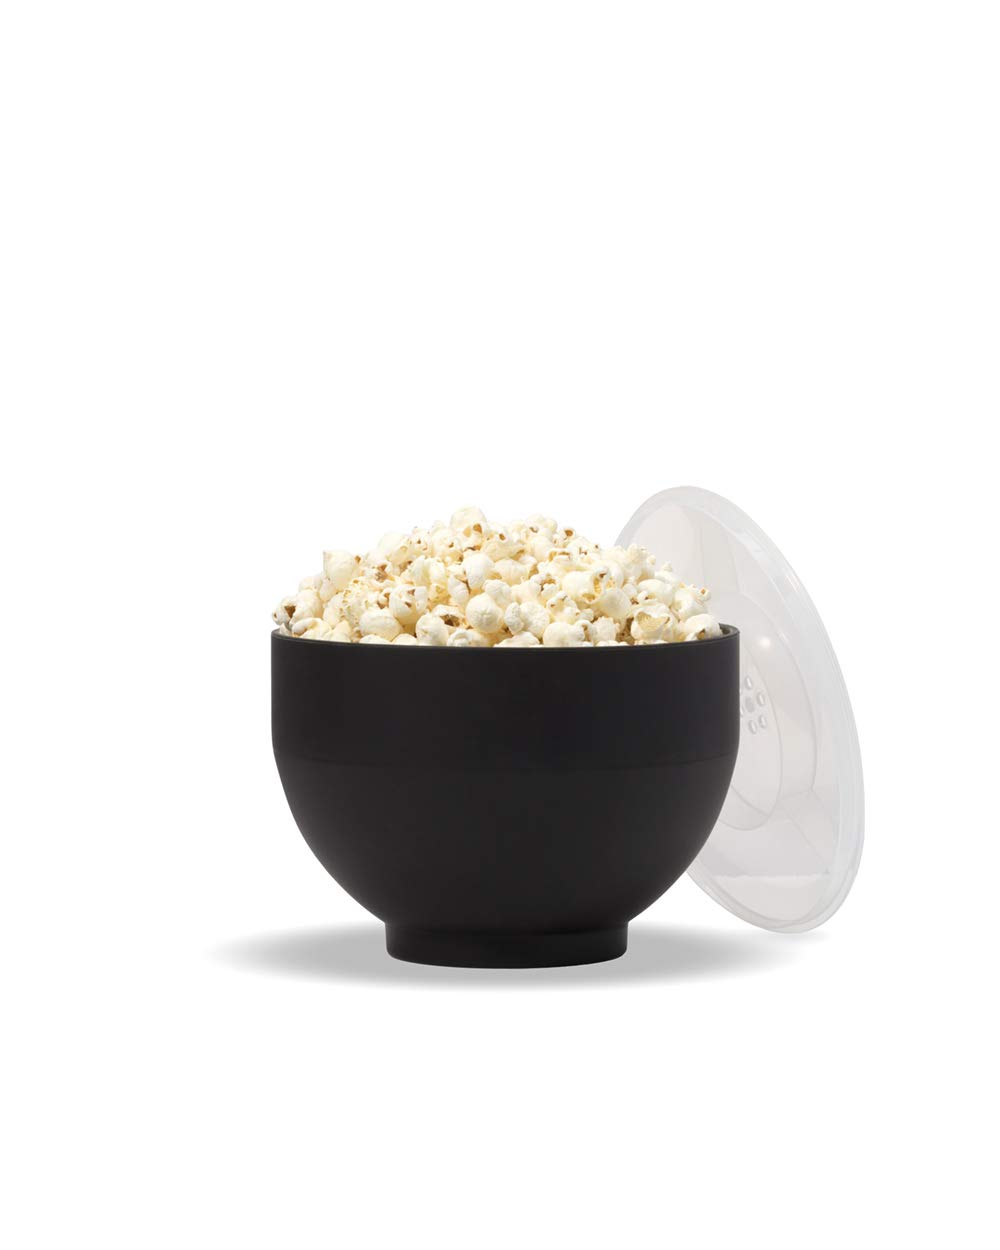 W&P WP-POP-CH Microwave Silicone Popcorn Popper Maker, Collapsible Bowl, BPA, Eco-Friendly, Waste Free, 9.3 Cups, Charcoal